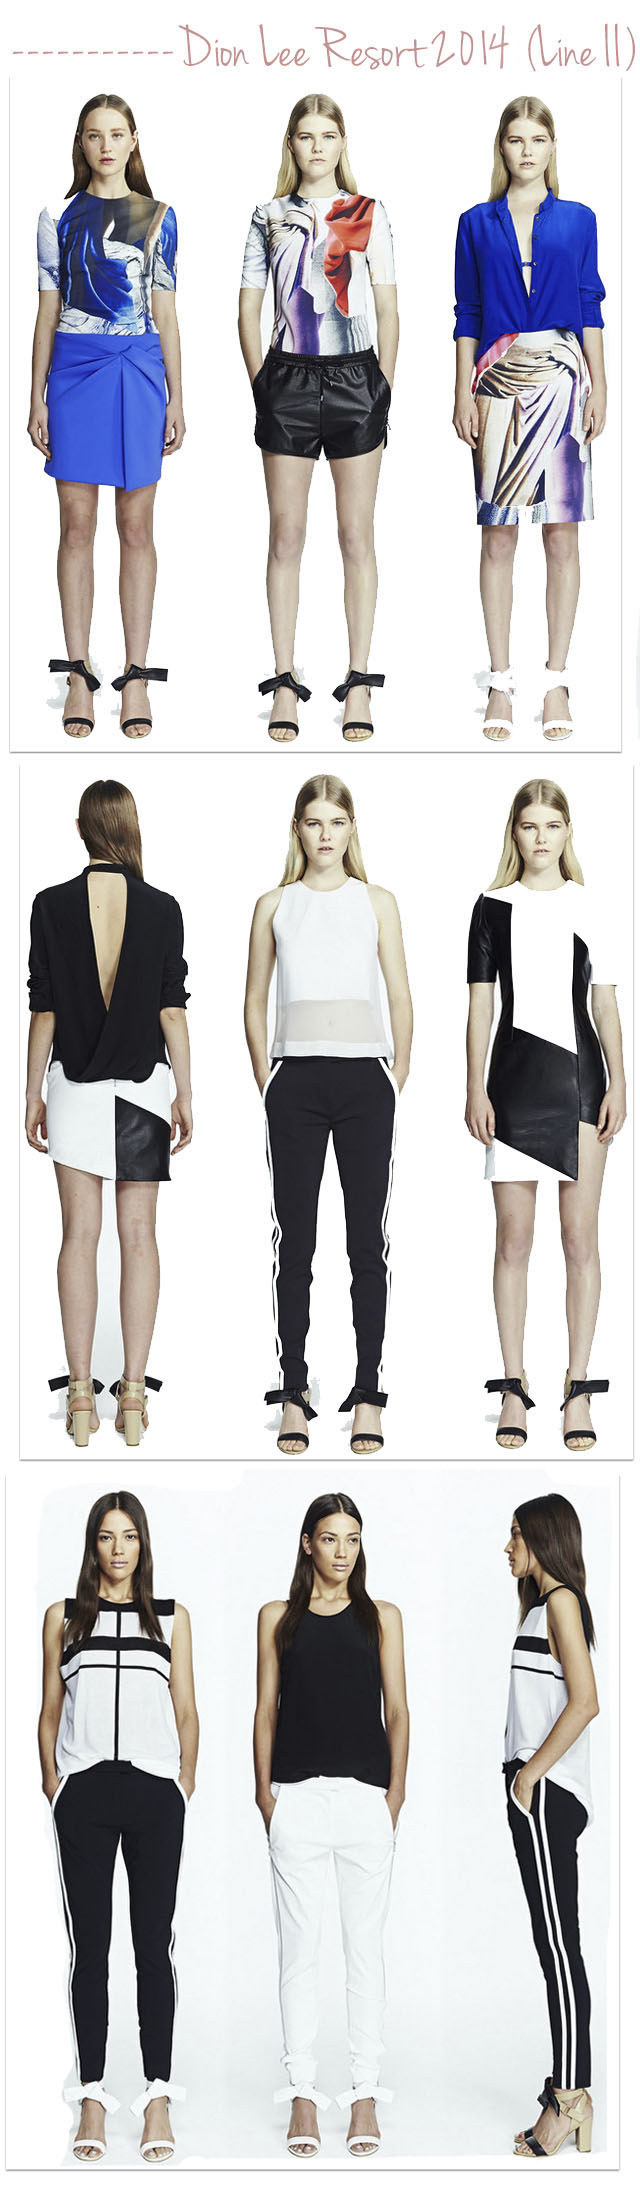 blog-da-alice-ferraz-dion-lee (2)